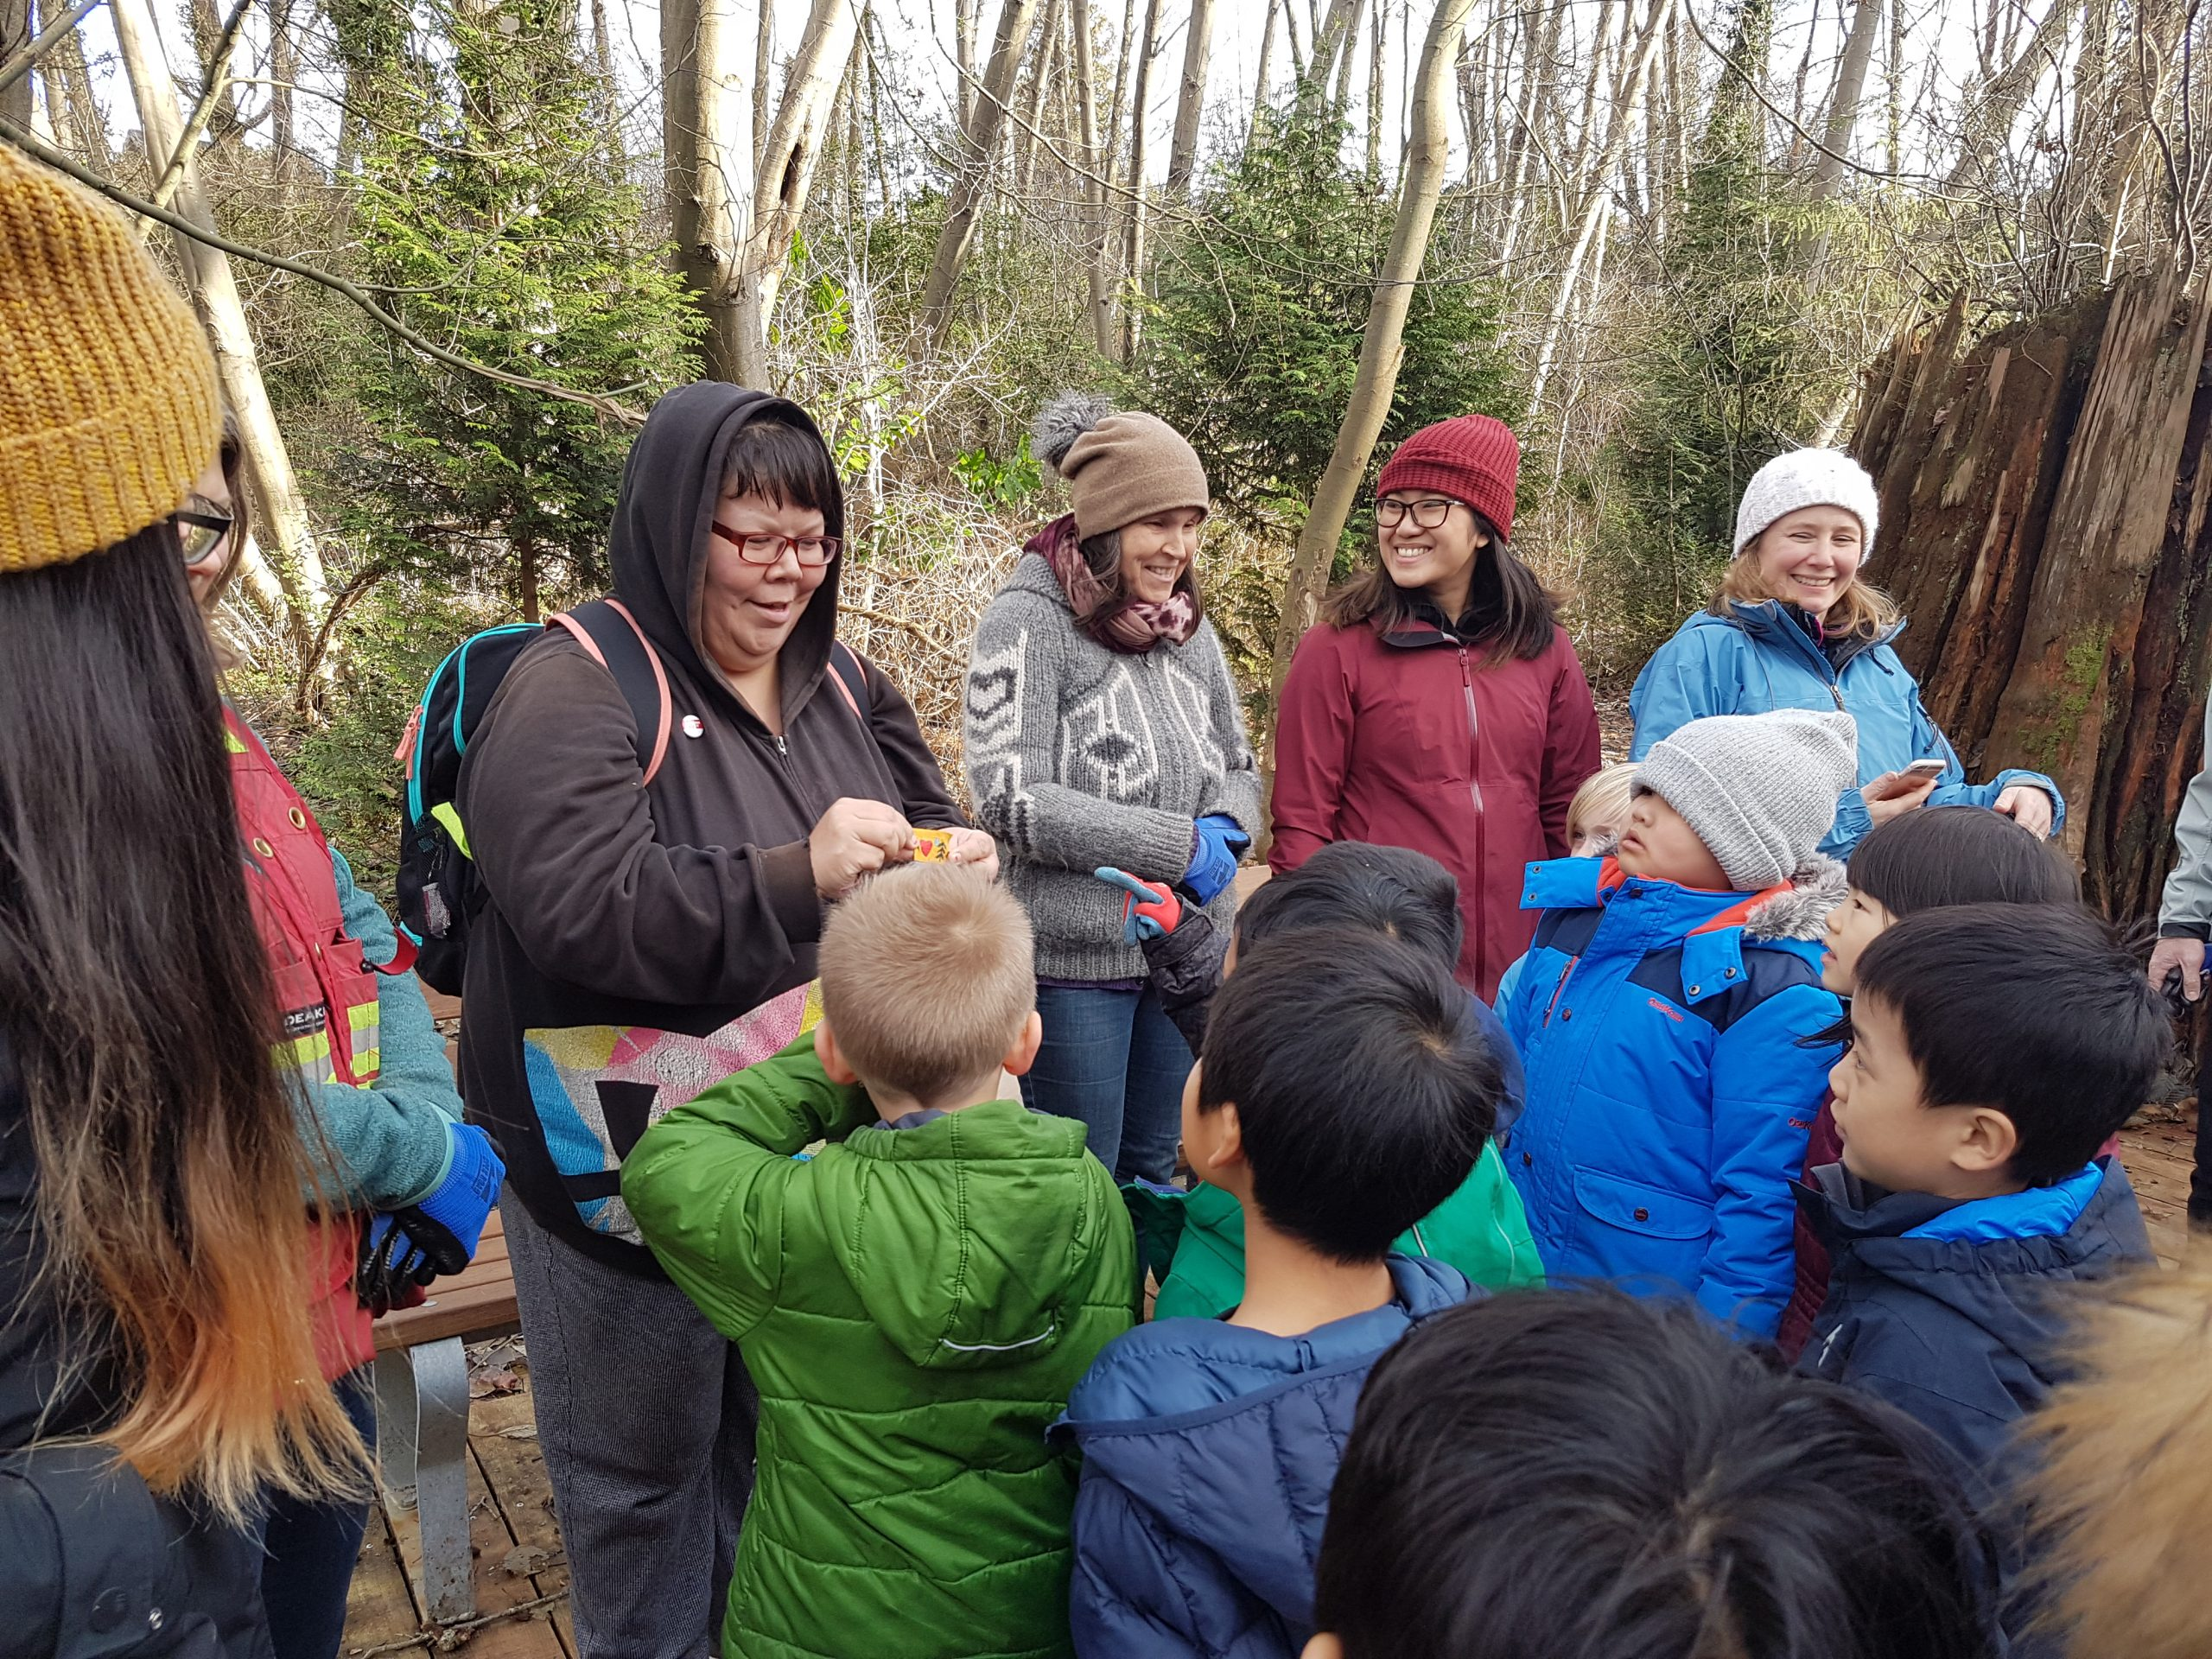 Planting with Norquay Elementary Students & Resurfacing History (Dec 2018) - Photo by Bea Miller